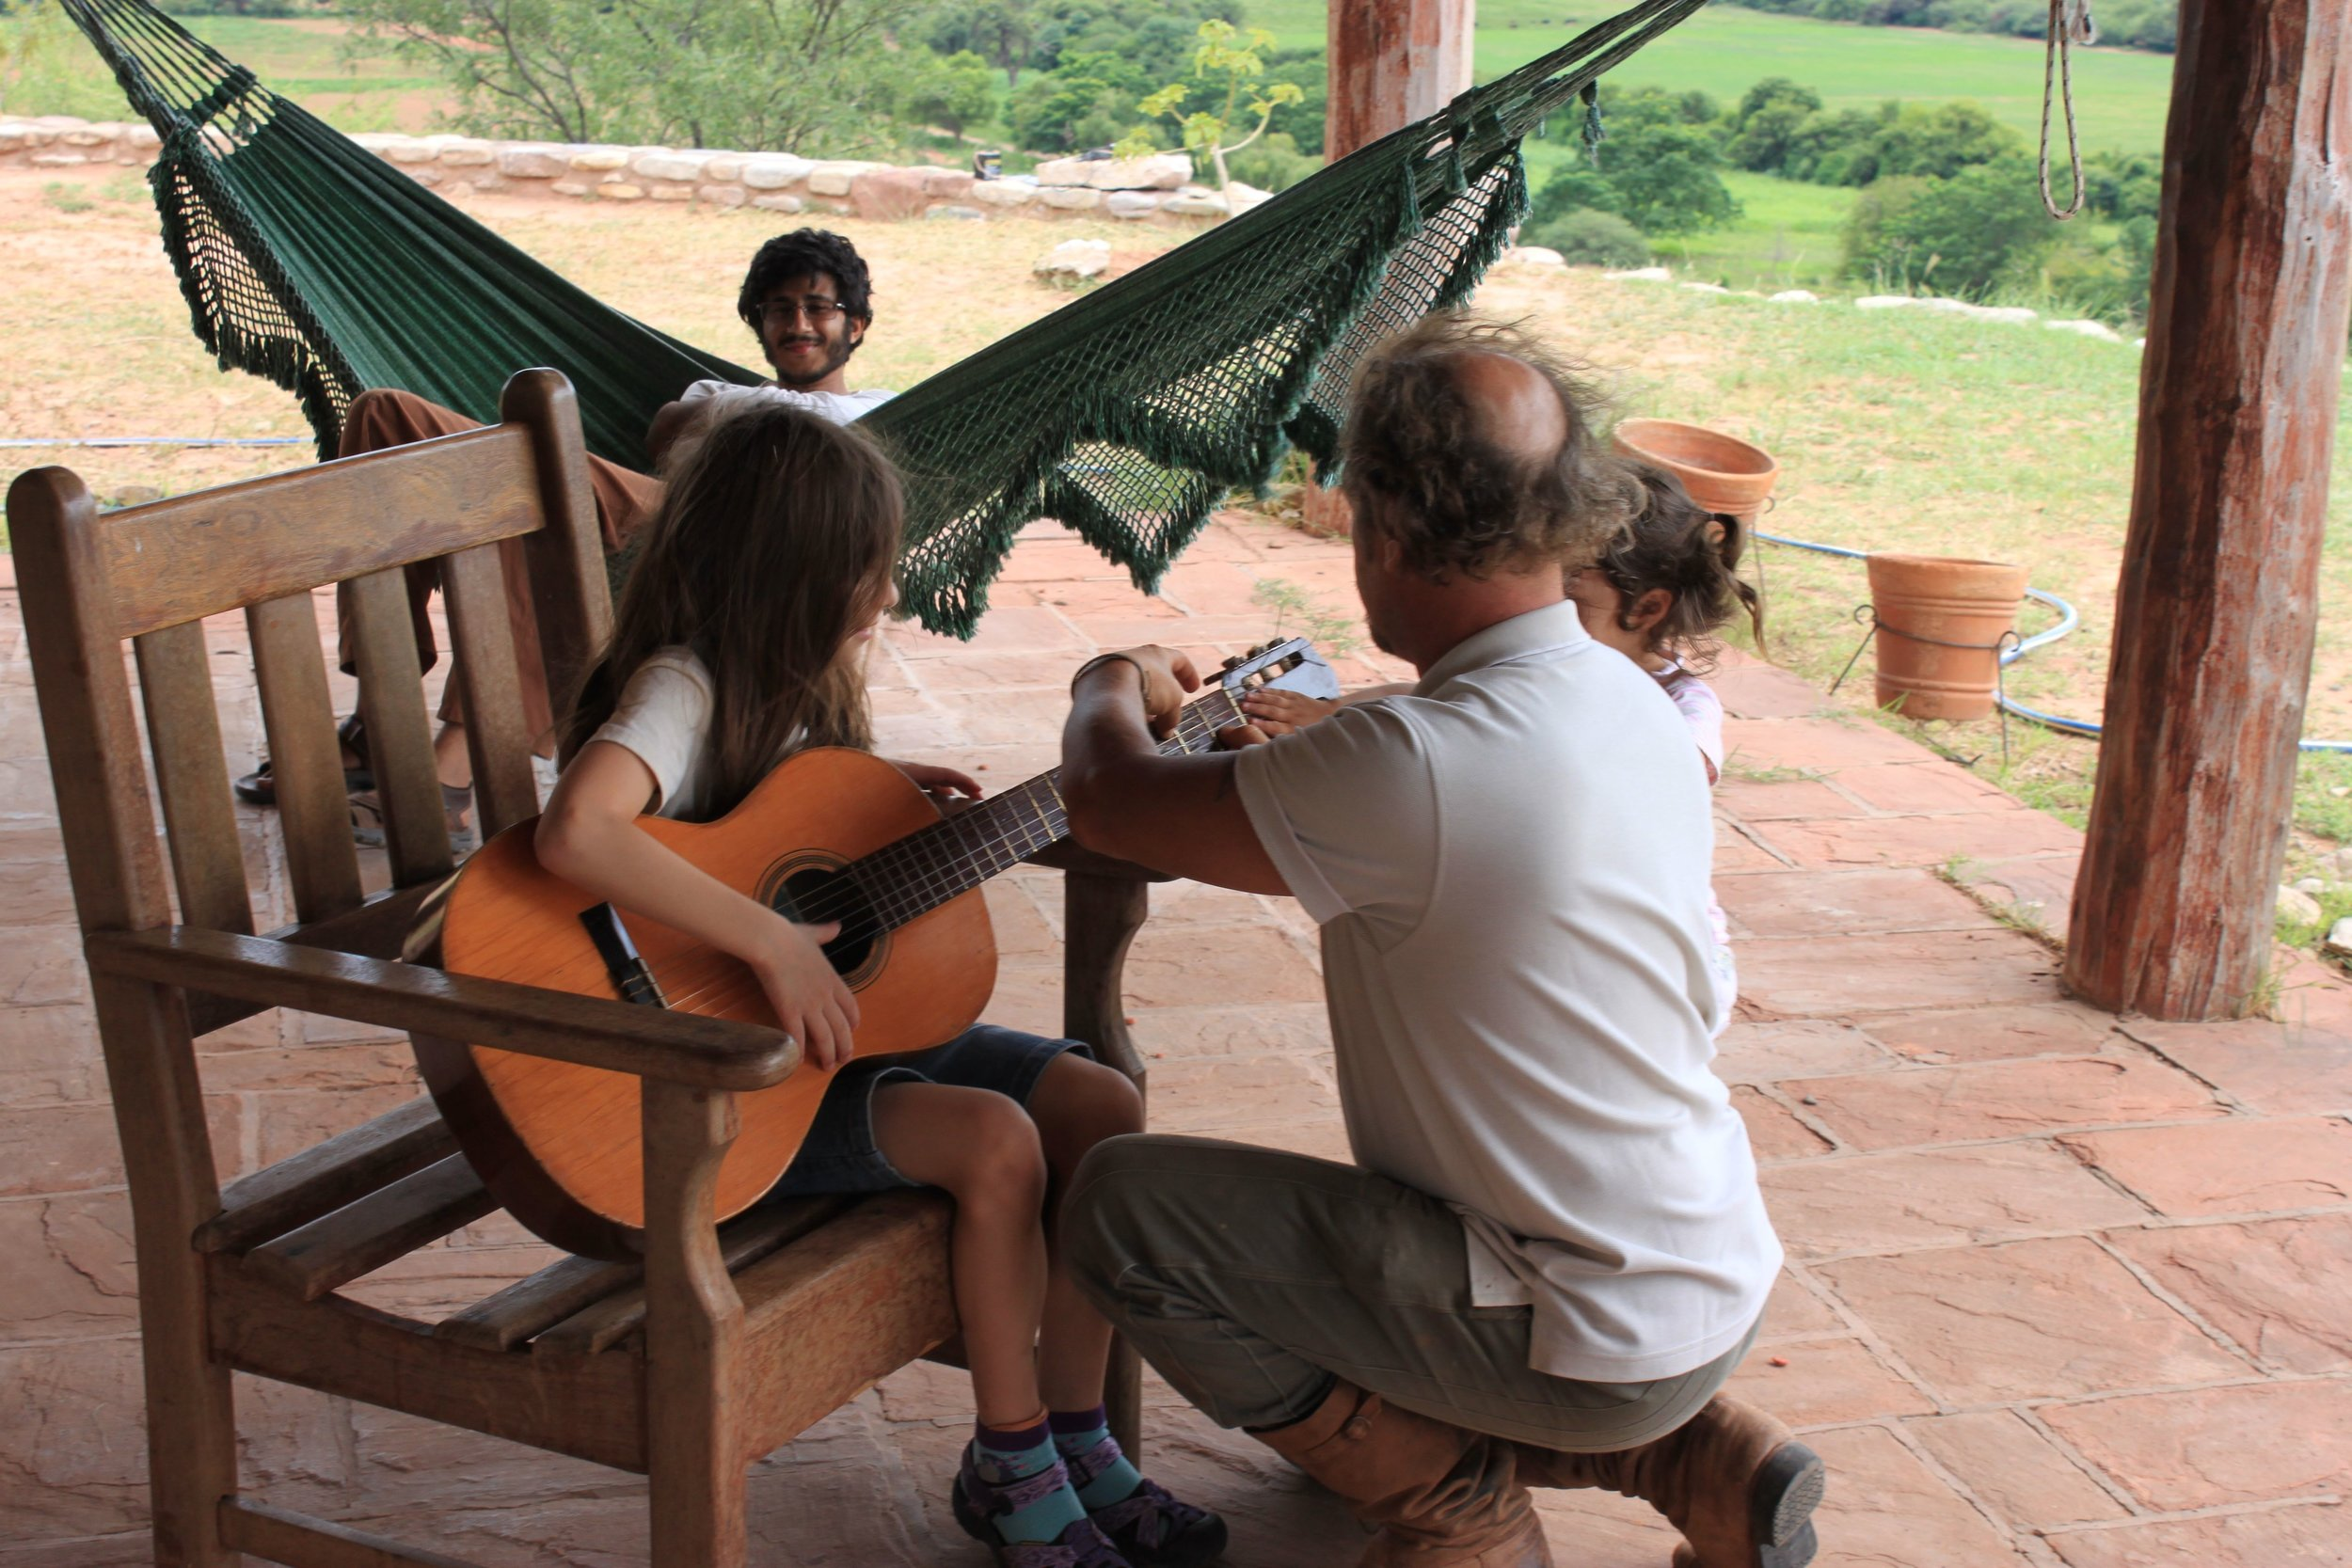 Martine teaching Kids to play Guitar - Copy - Copy - Copy - Copy.jpg